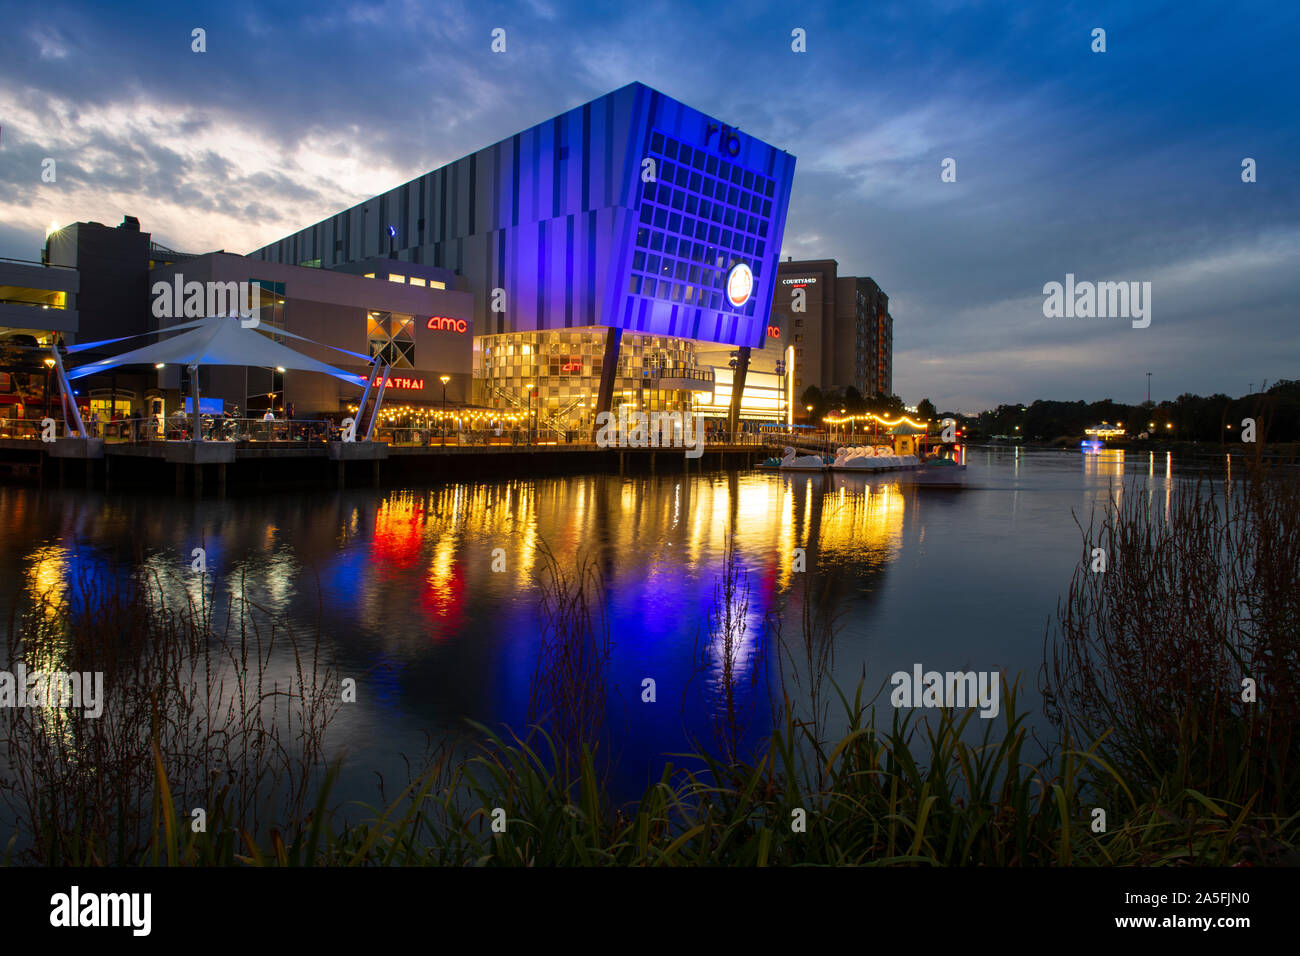 usa-maryland-md-montgomery-county-gaithersburg-rio-at-washingtonian-center-with-shopping-dining-movies-entertainment-by-a-lake-2A5FJN0.jpg